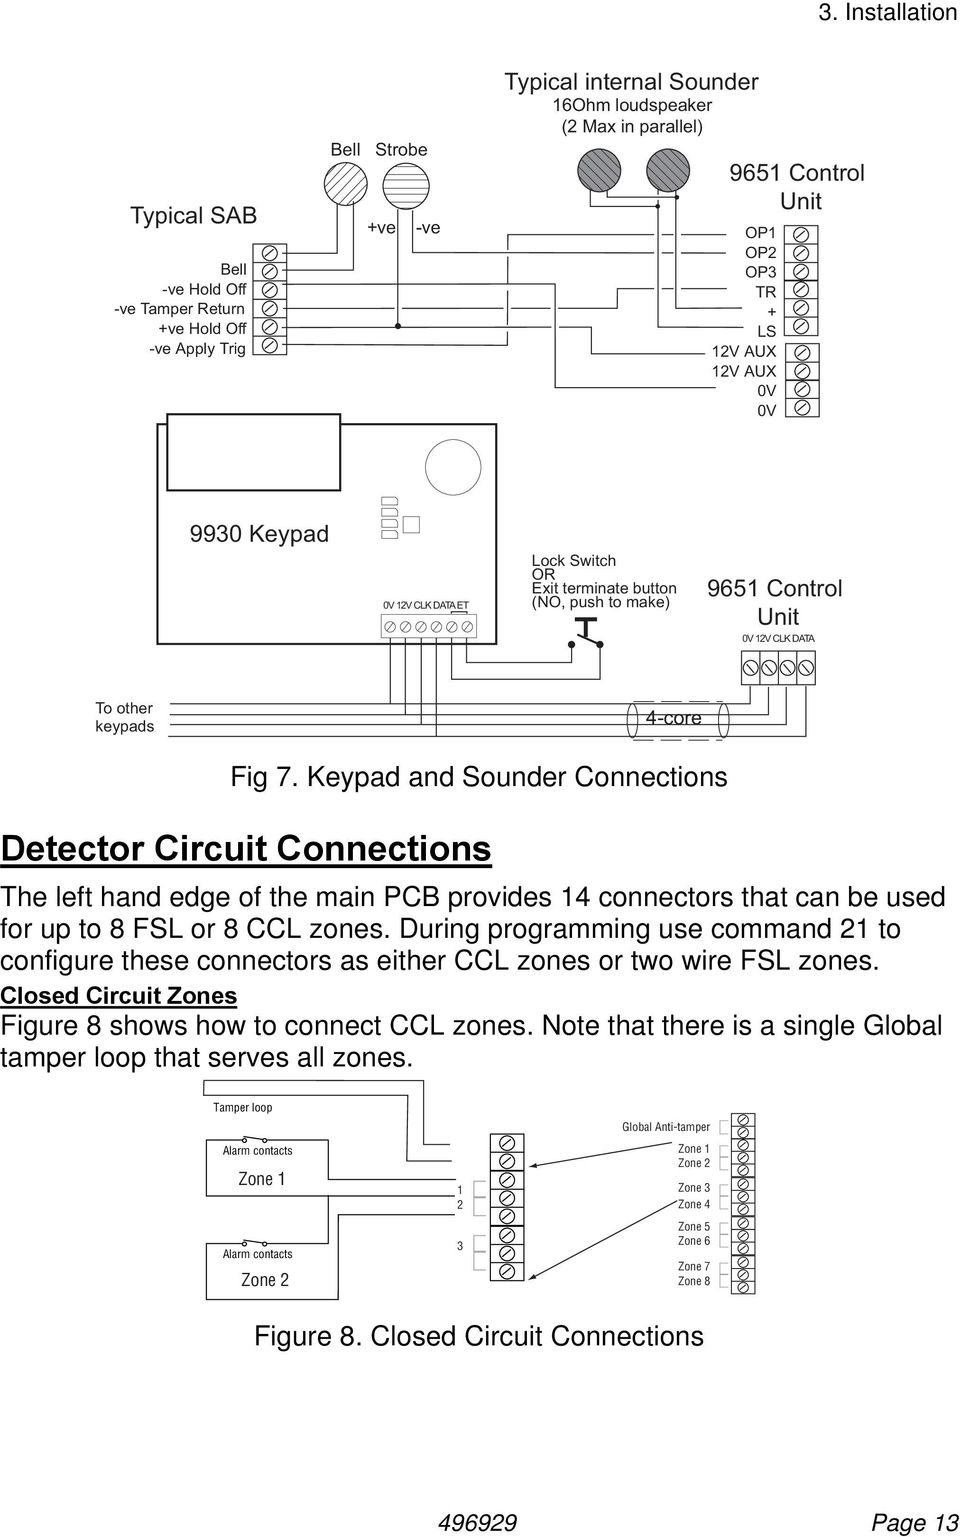 Installation and programming guide hardwired control panel pdf keypad and sounder connections detector circuit connections the left hand edge of the main pcb provides asfbconference2016 Image collections